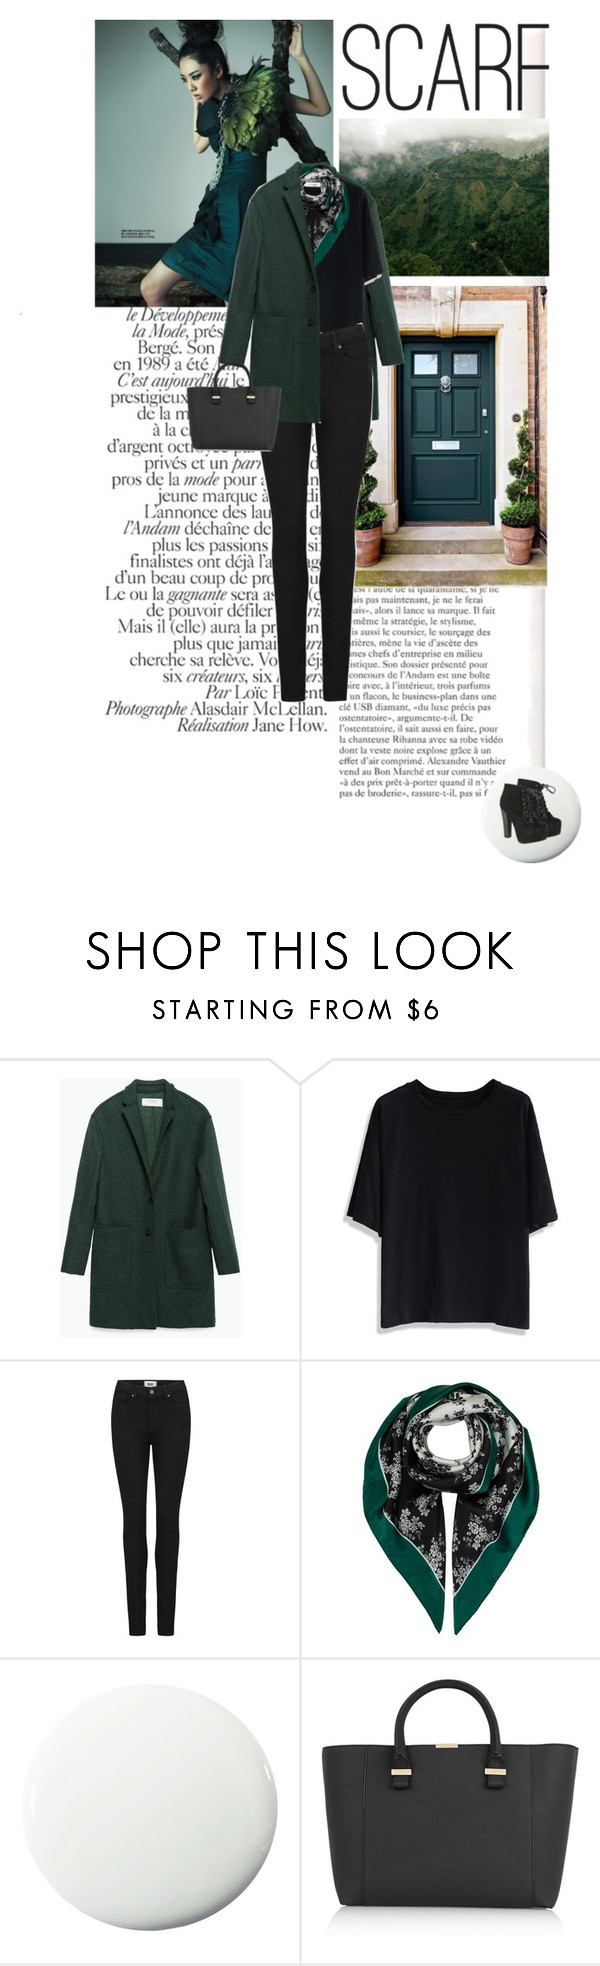 """""""Green"""" by doris-knezevic ❤ liked on Polyvore featuring Zara, Chicwish, Paige Denim, Dolce&Gabbana, Pure Home, Victoria Beckham and Breckelle's"""